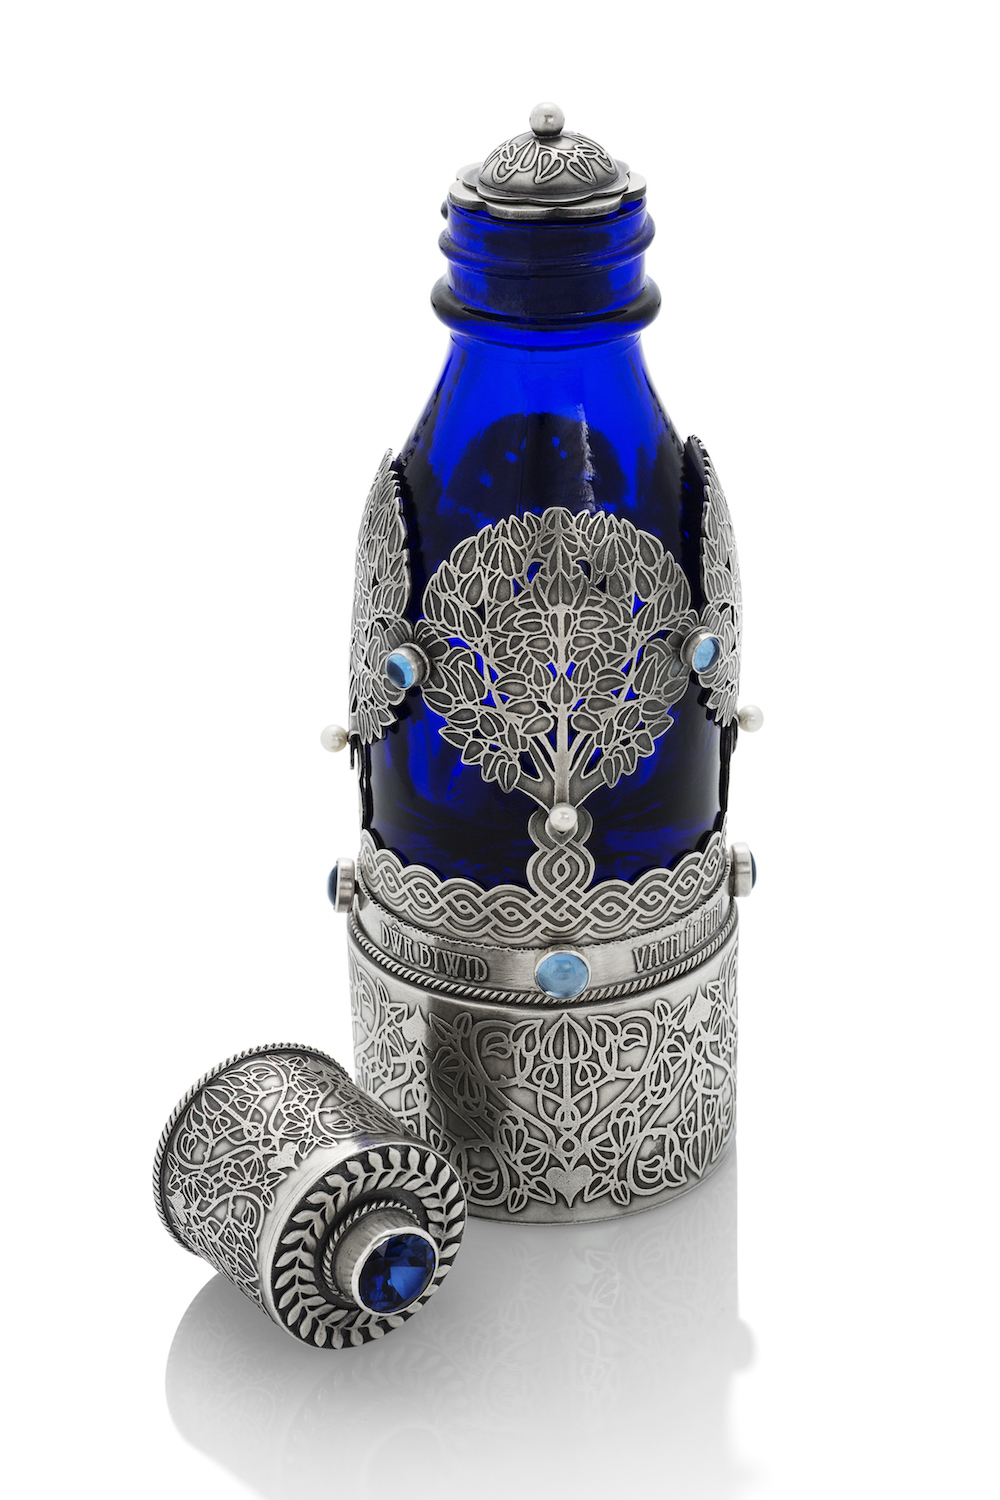 Vicks Vatronol bottle, Sterling silver, sapphire, fresh water pearls, spring water, organic apple seeds